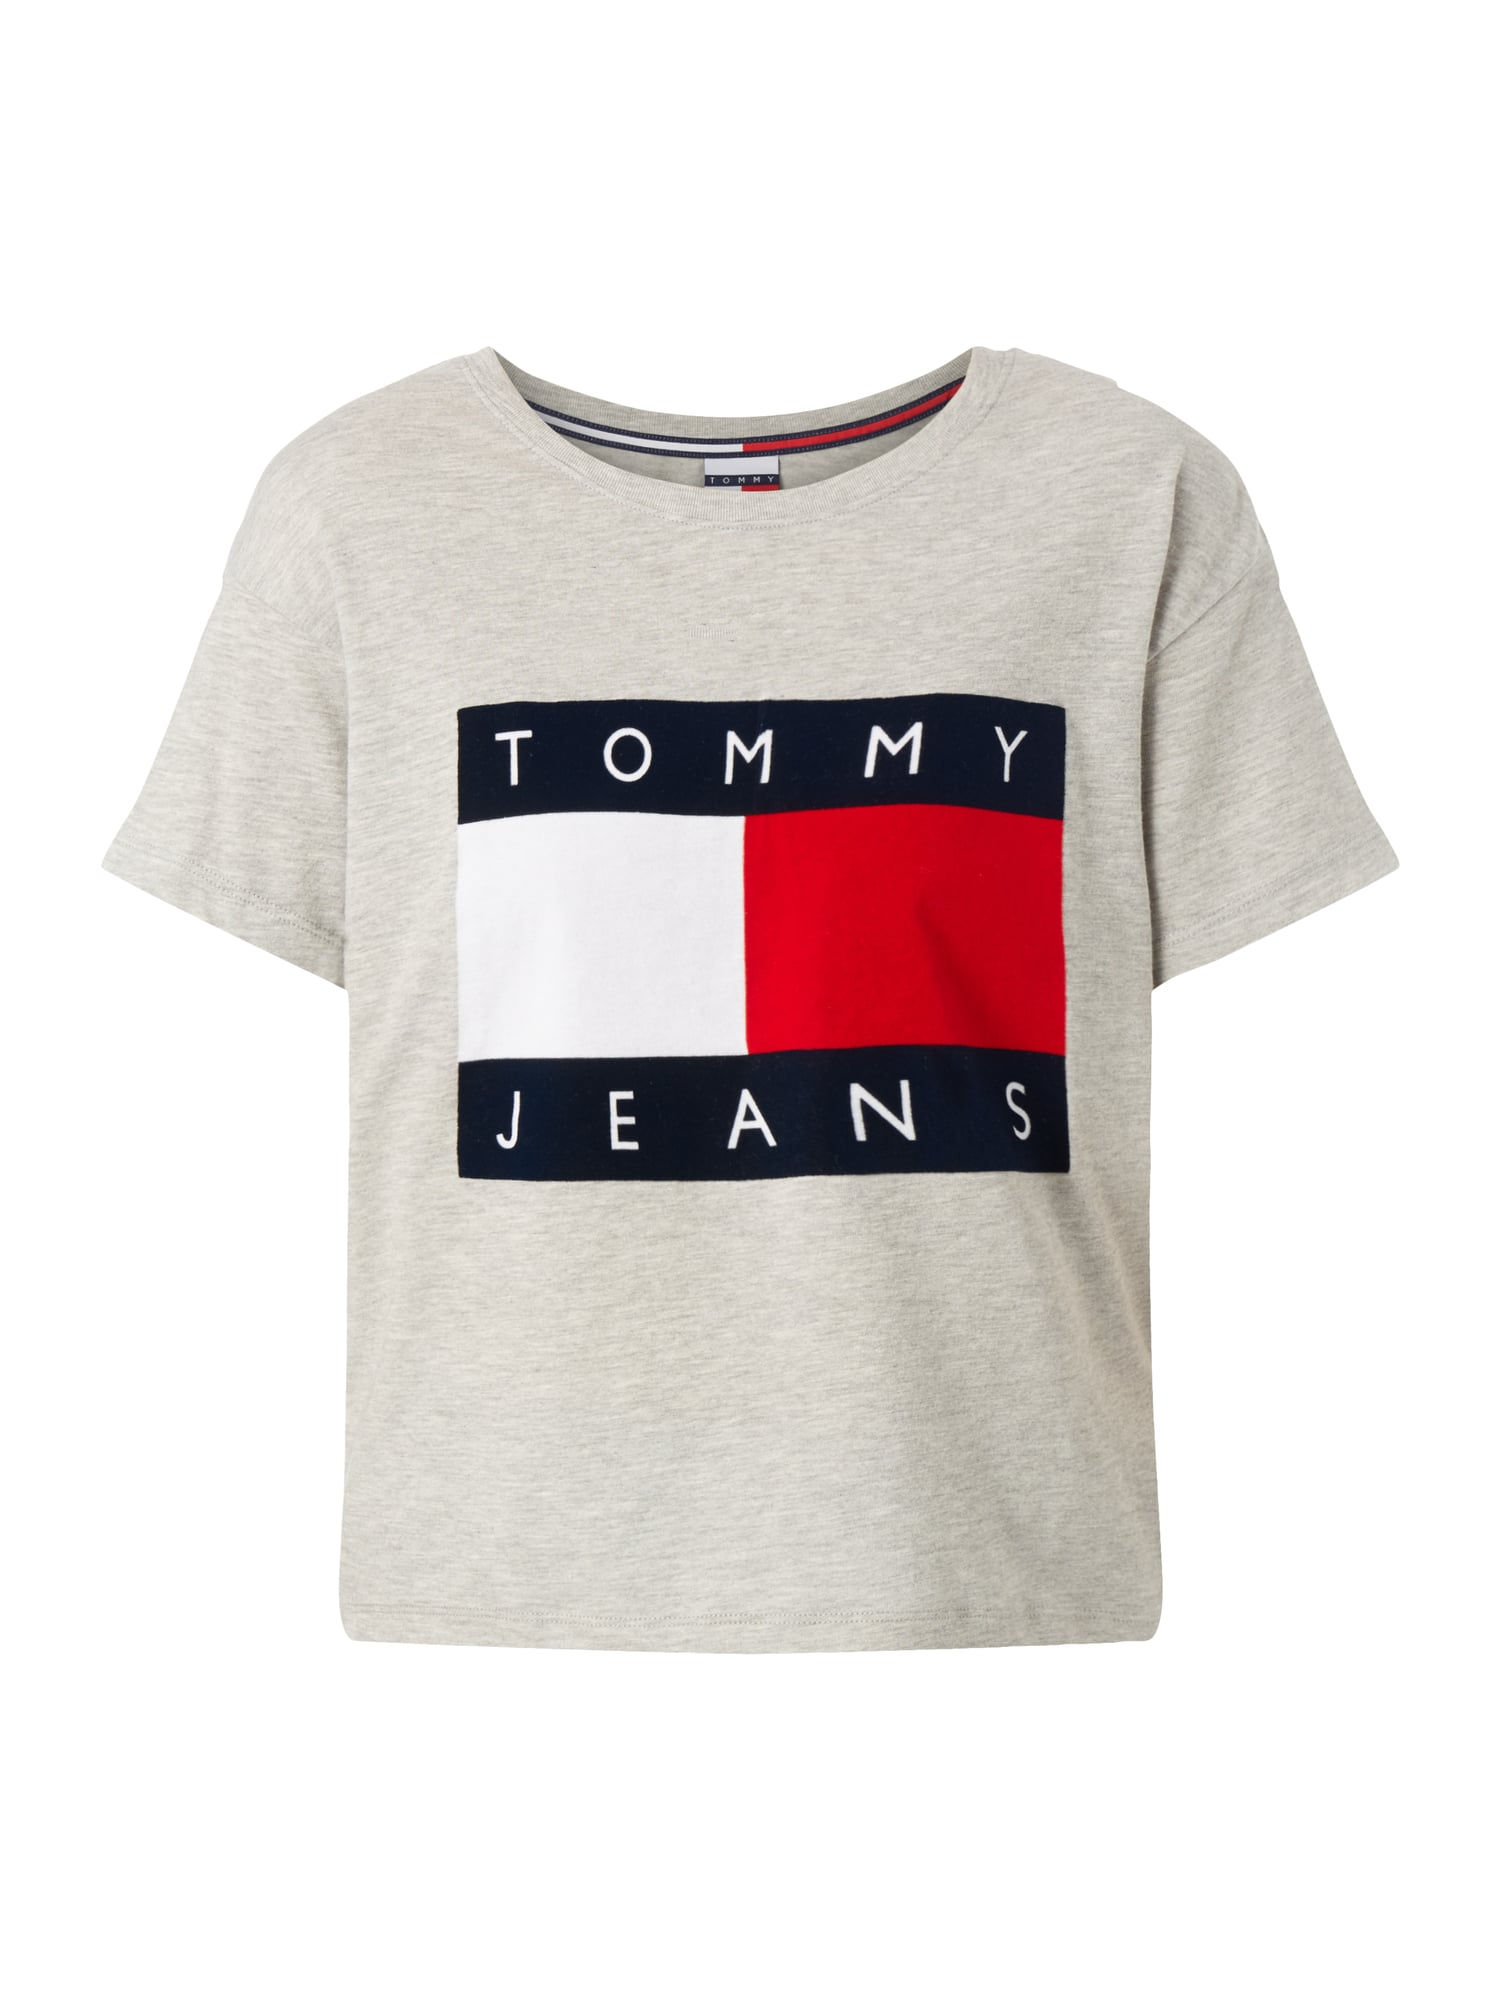 tommy jeans oversized t shirt mit logo flockprint in grau. Black Bedroom Furniture Sets. Home Design Ideas